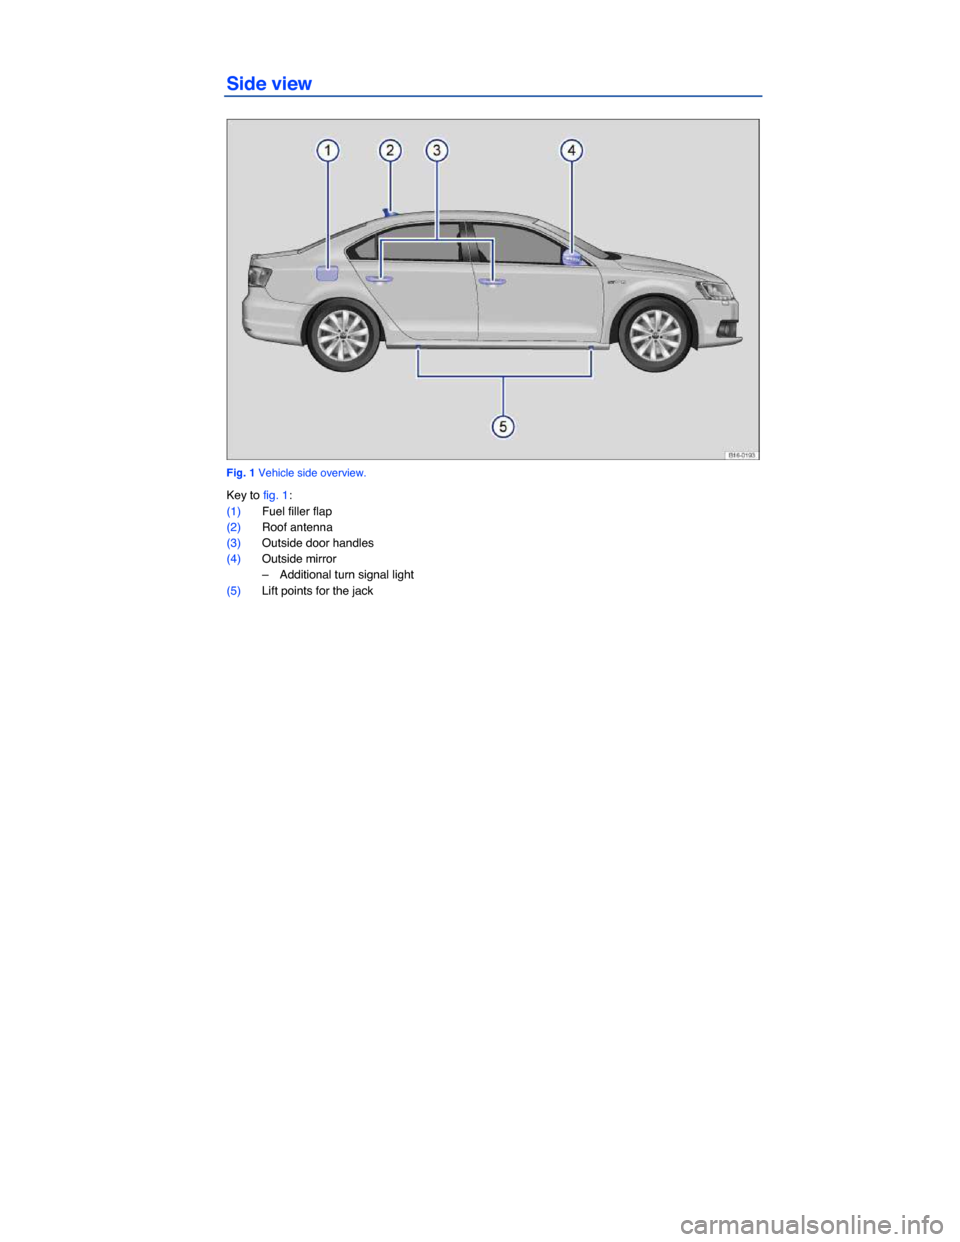 vw jetta 2013 owners manual pdf